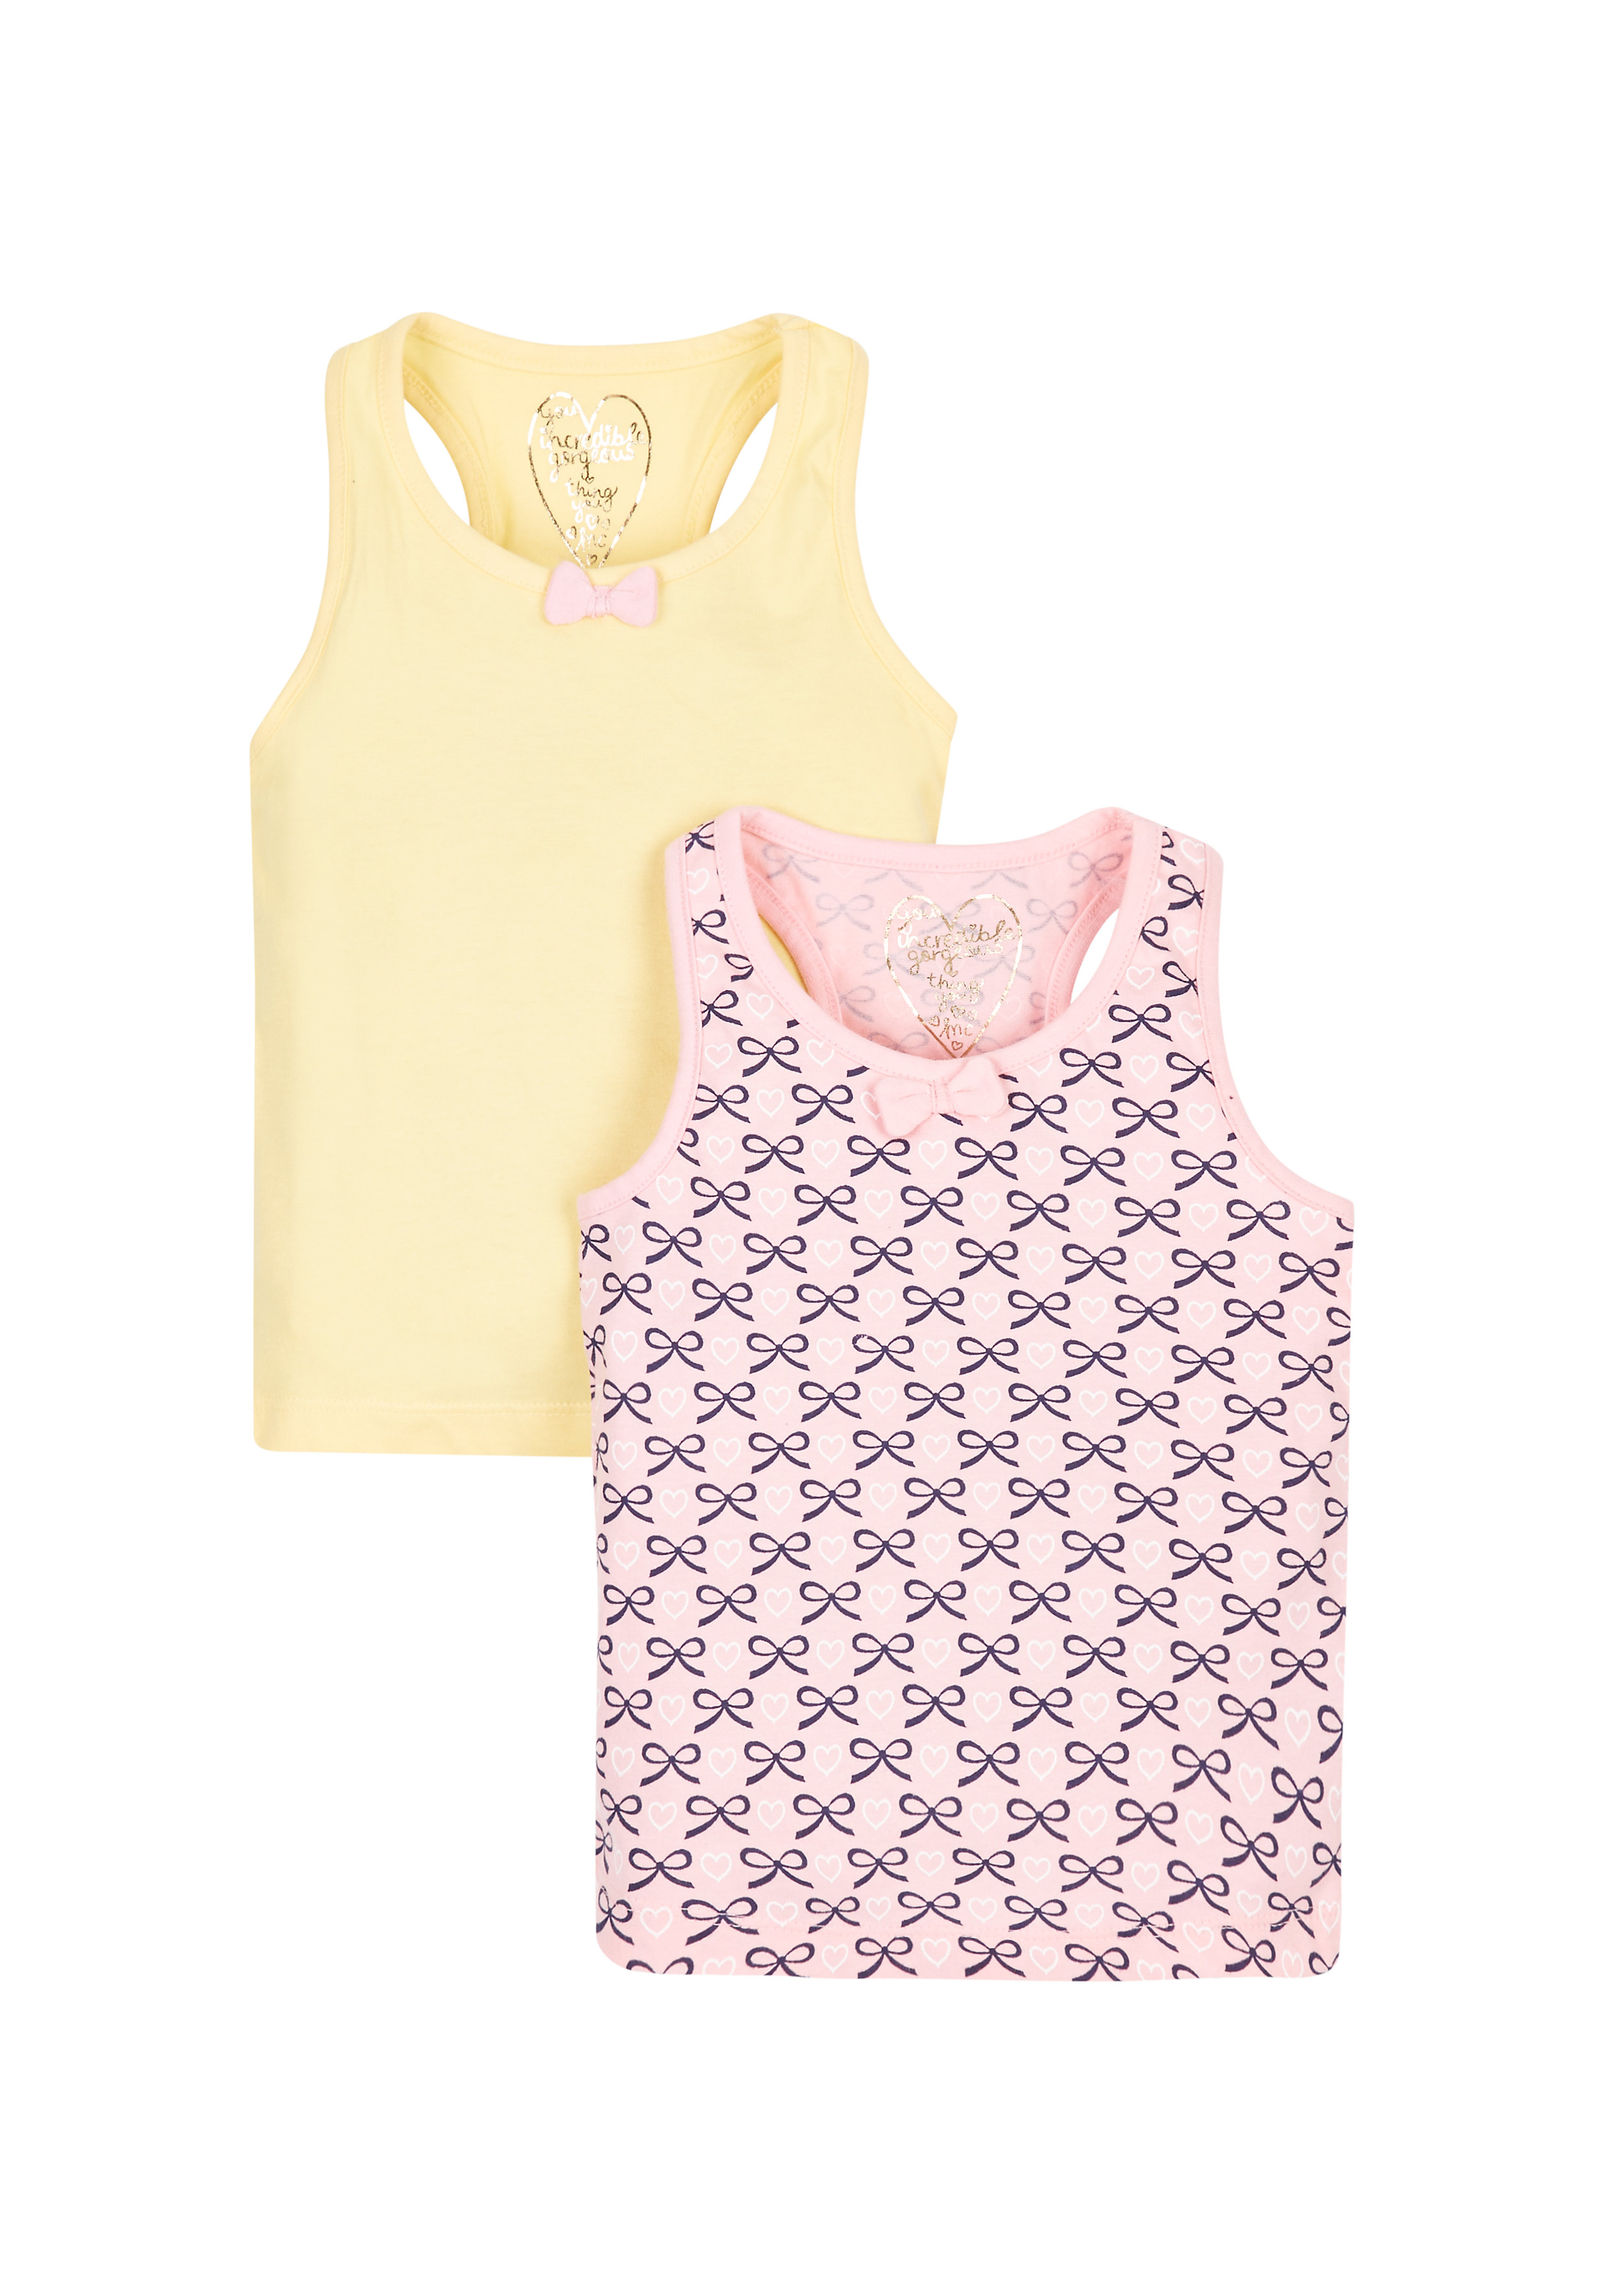 Mothercare   Girls Vests - Pack Of 2 - Multicolor